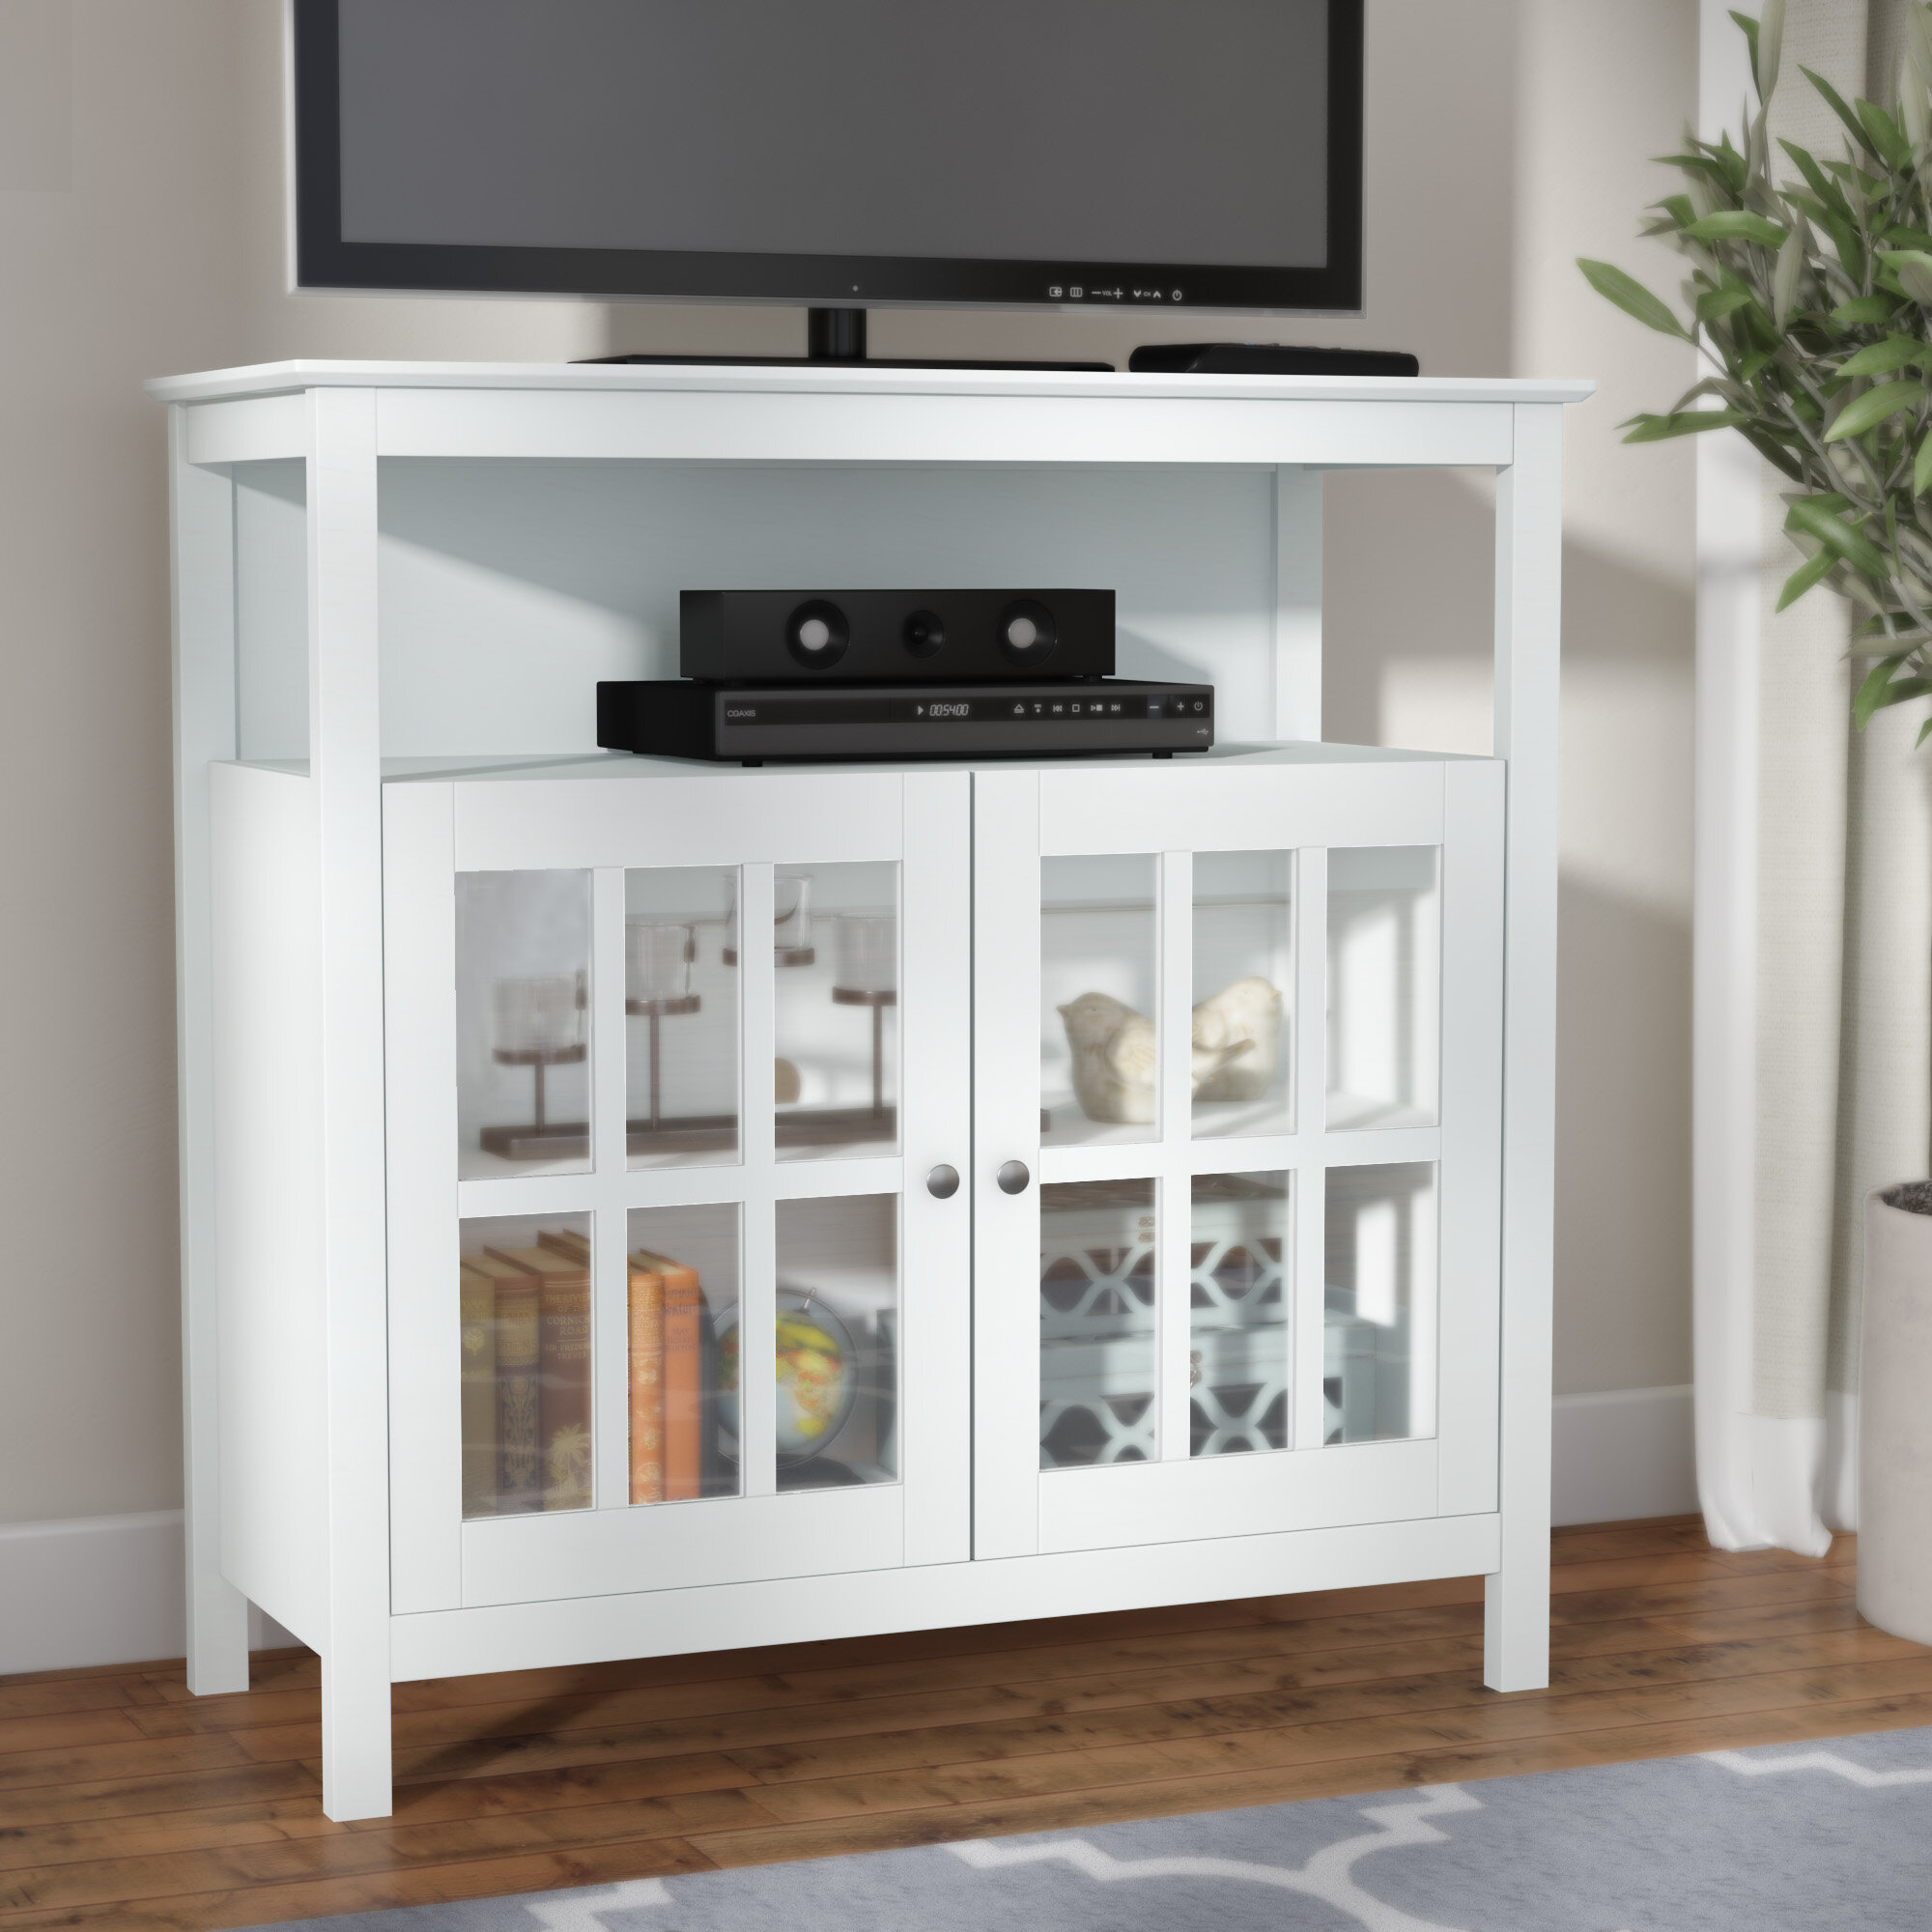 Andover Mills Rangely Tv Stand For Tvs Up To 40 Reviews Wayfair